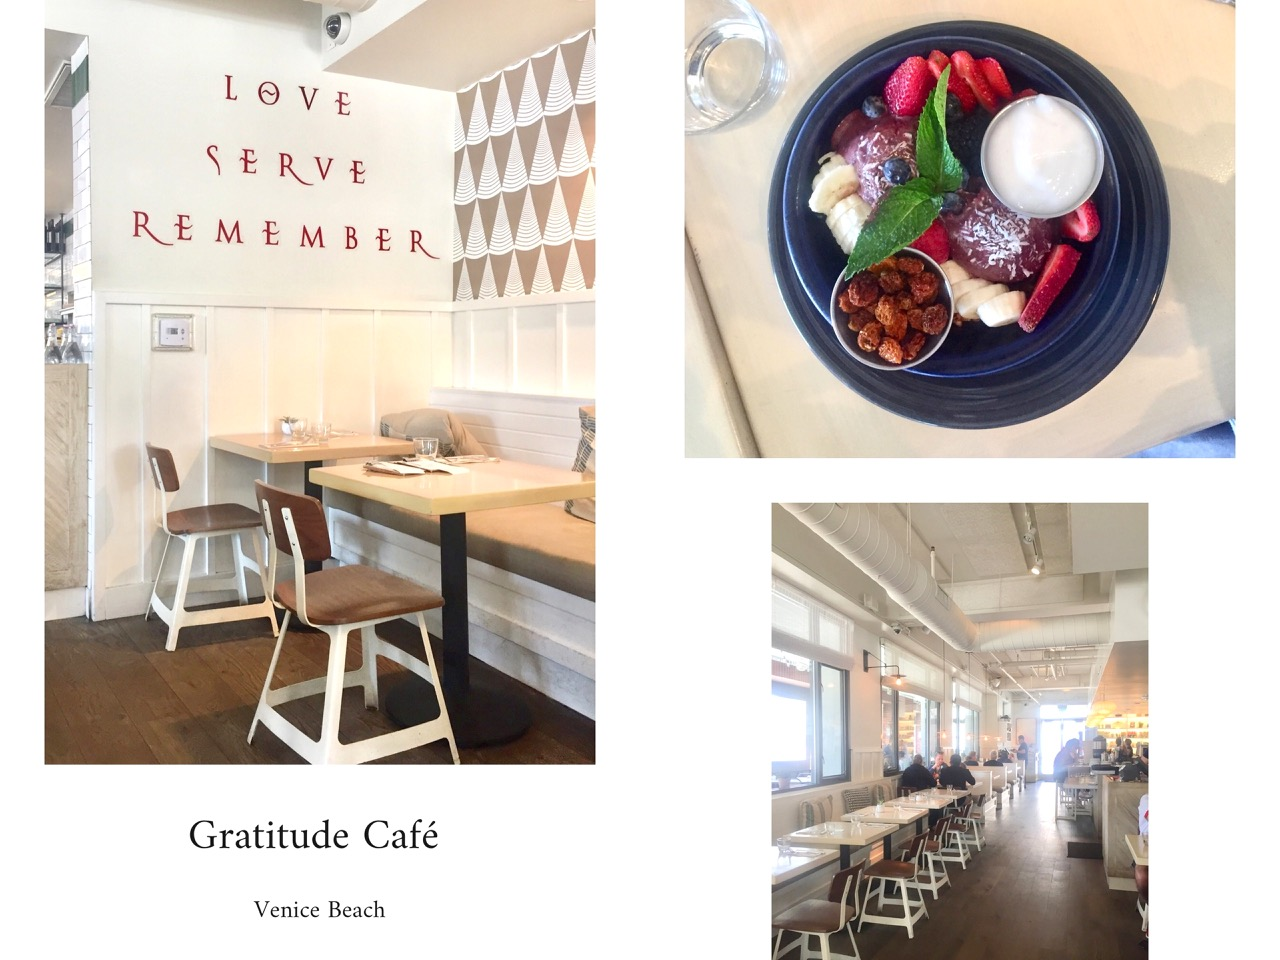 good spots,califronie,venice beach,travel,voyage,cartes postales,café gratitude,the butcher's daughter